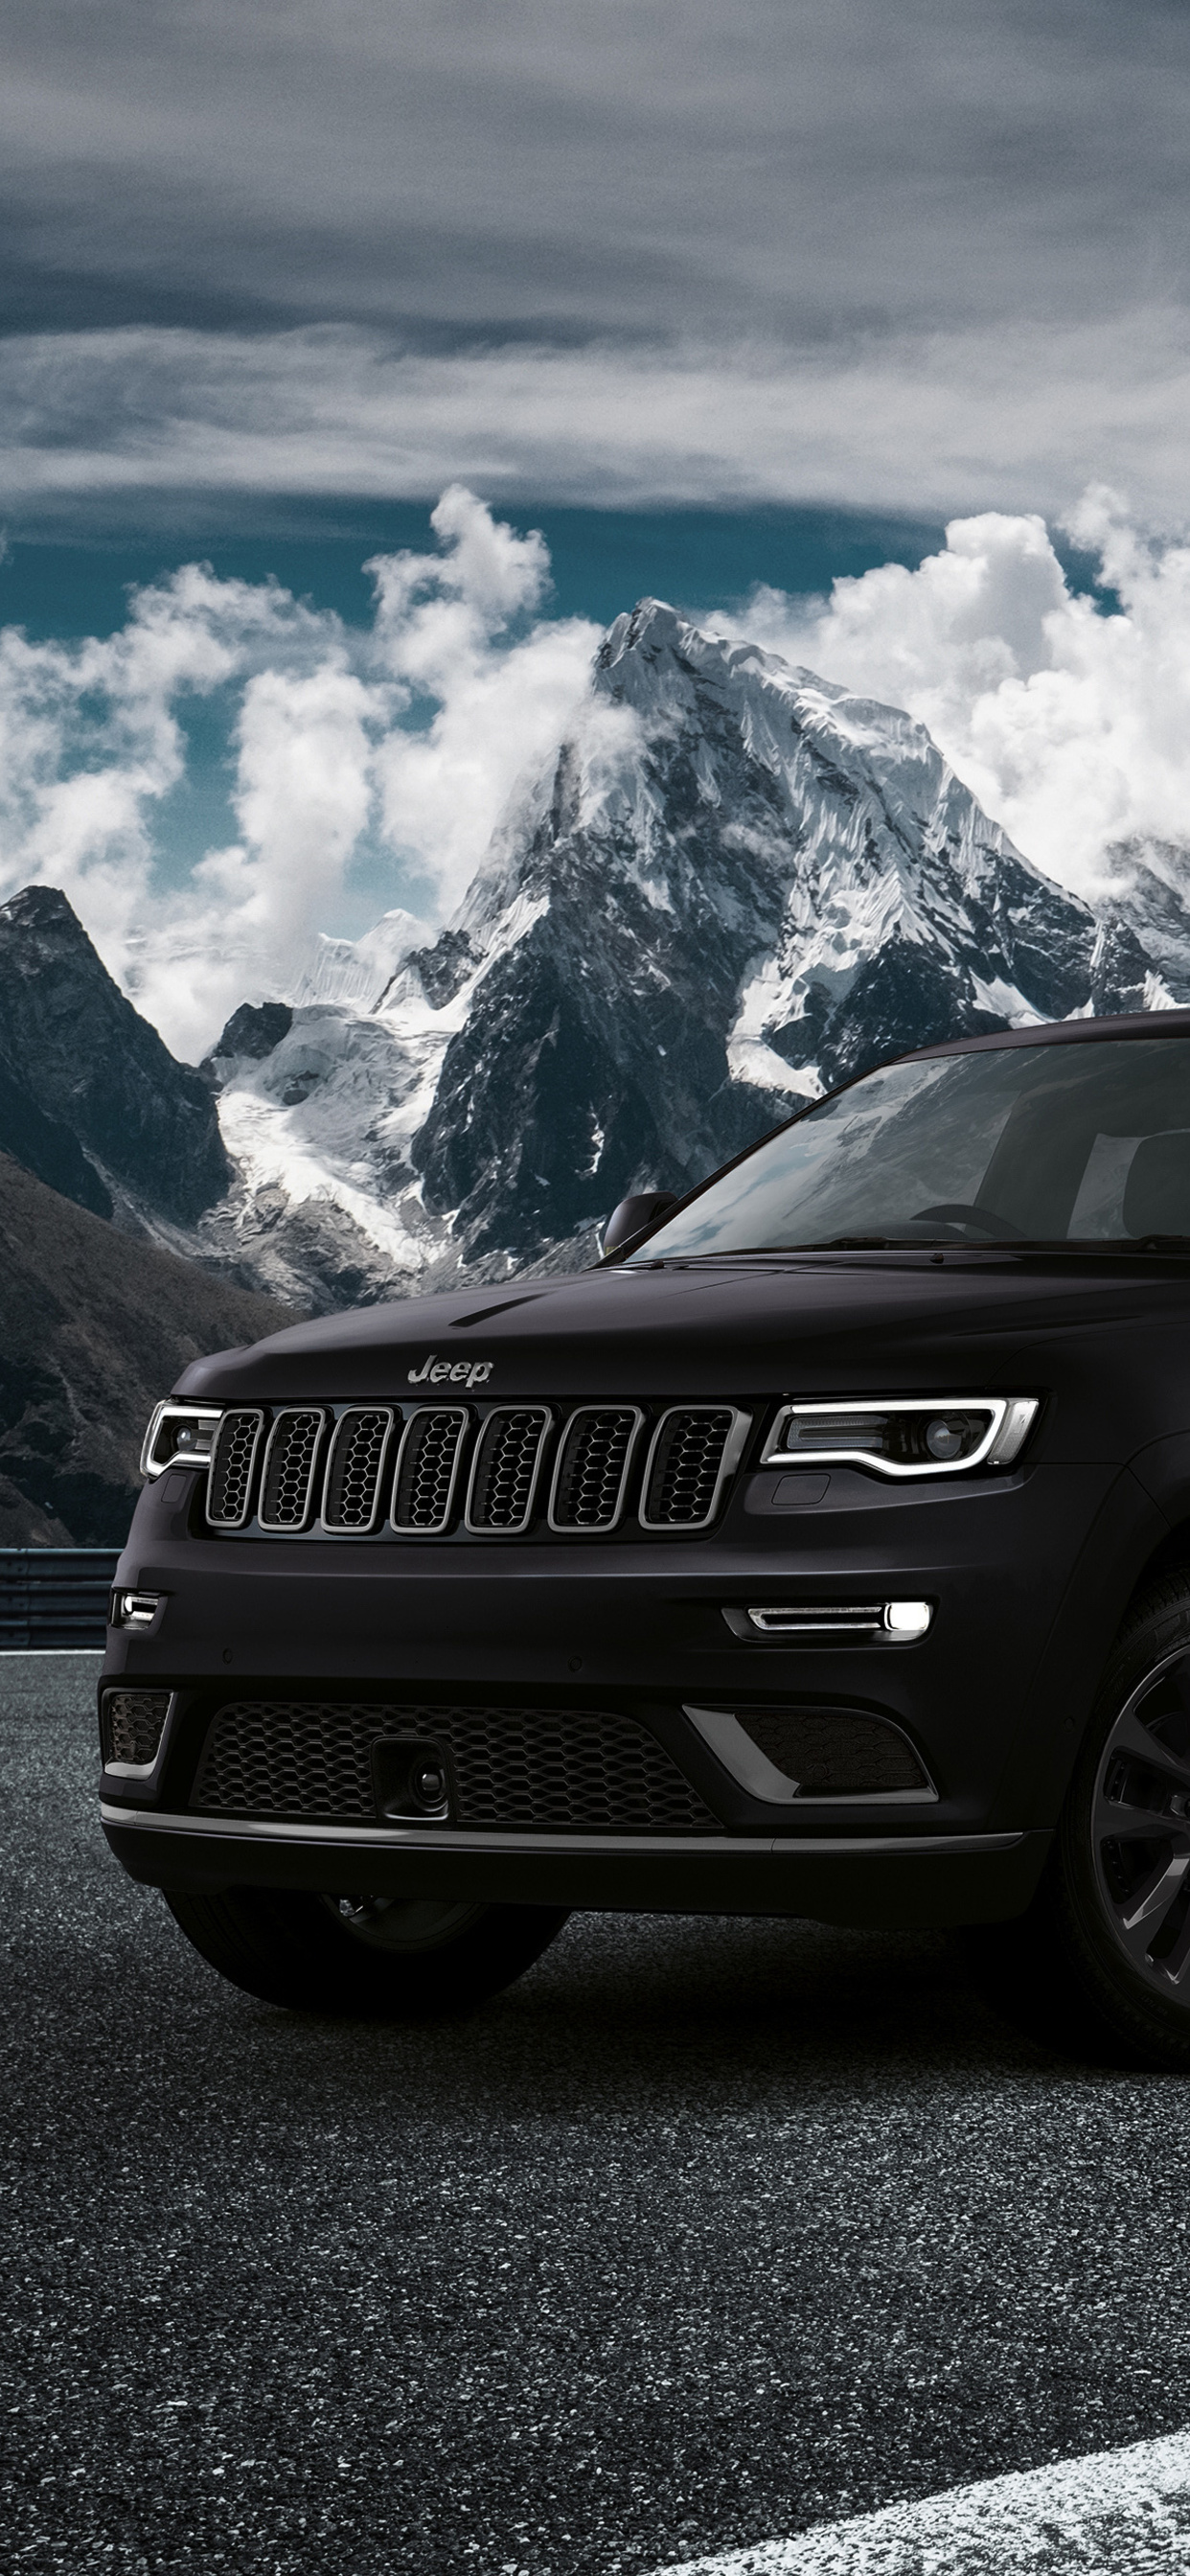 1242x2688 Jeep Grand Cherokee S 2018 Iphone Xs Max Hd 4k